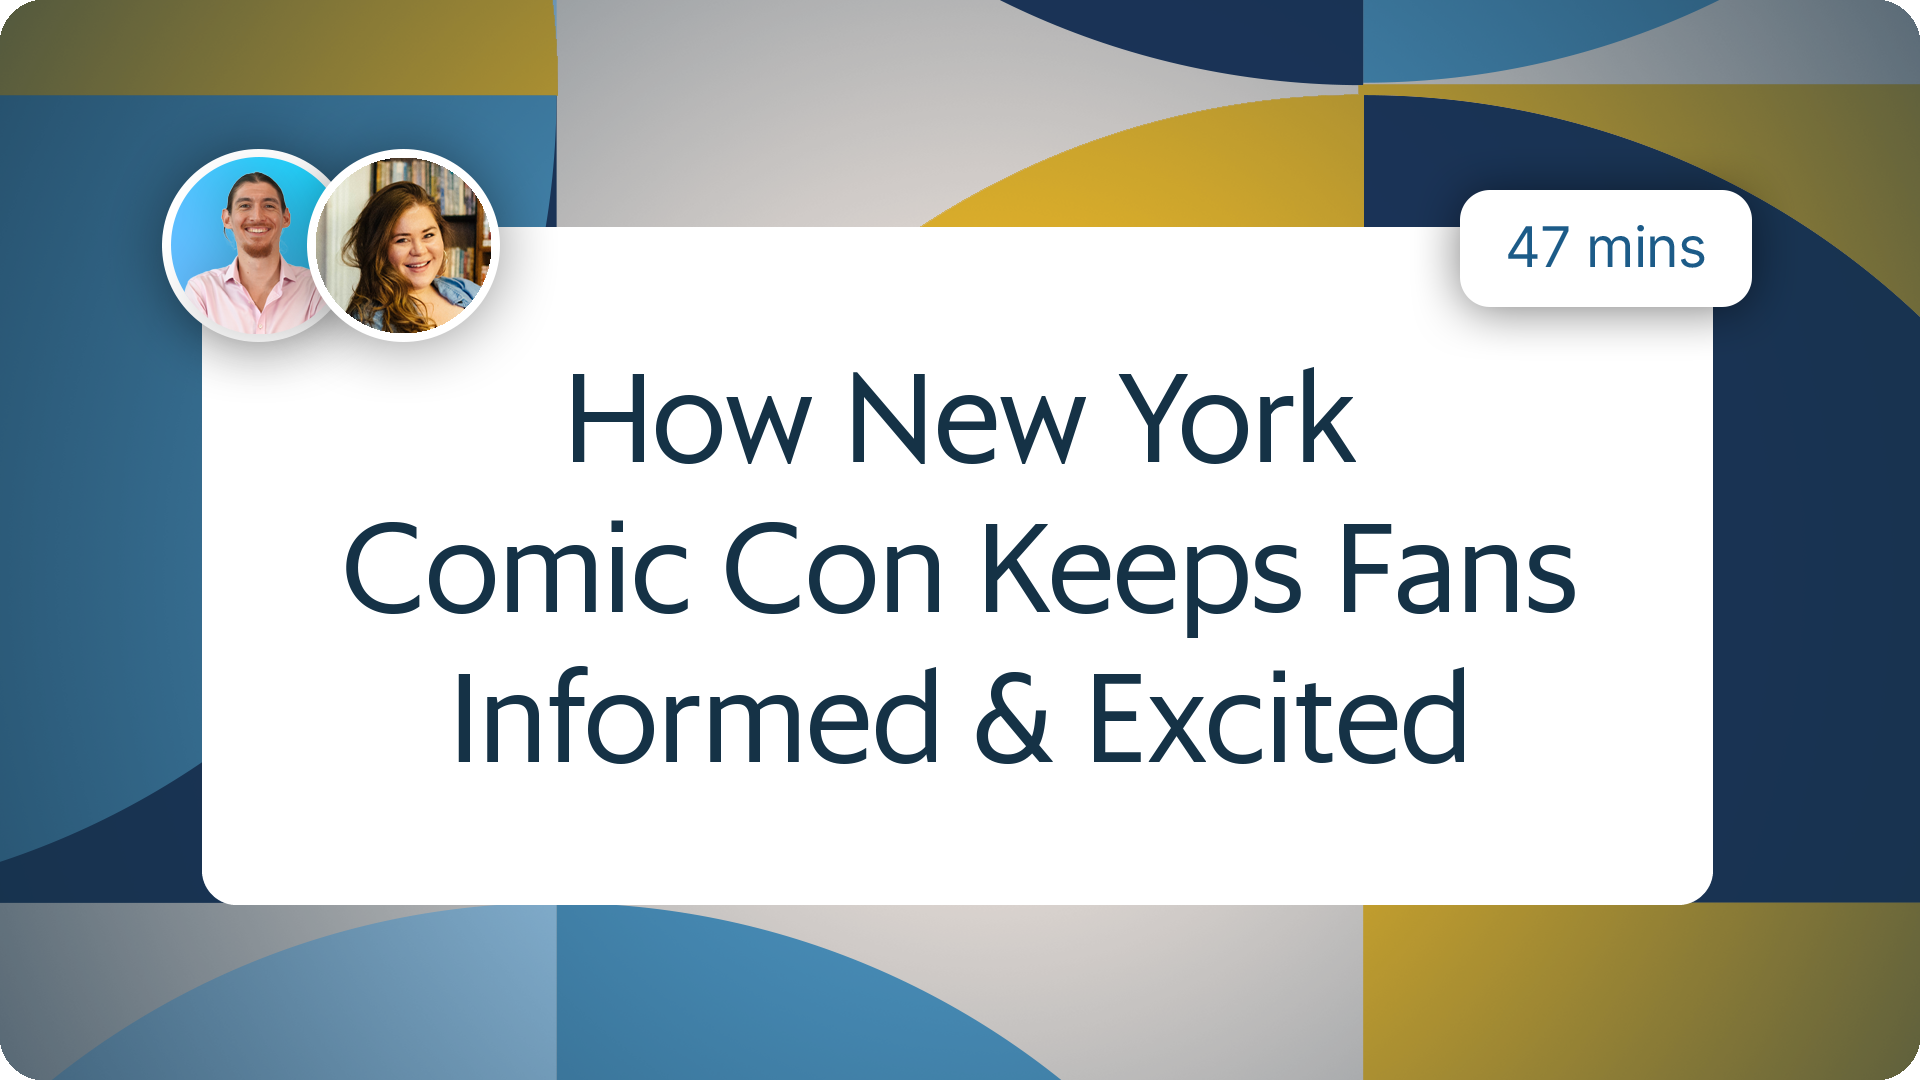 How New York Comic Con Keeps Fans Informed & Excited